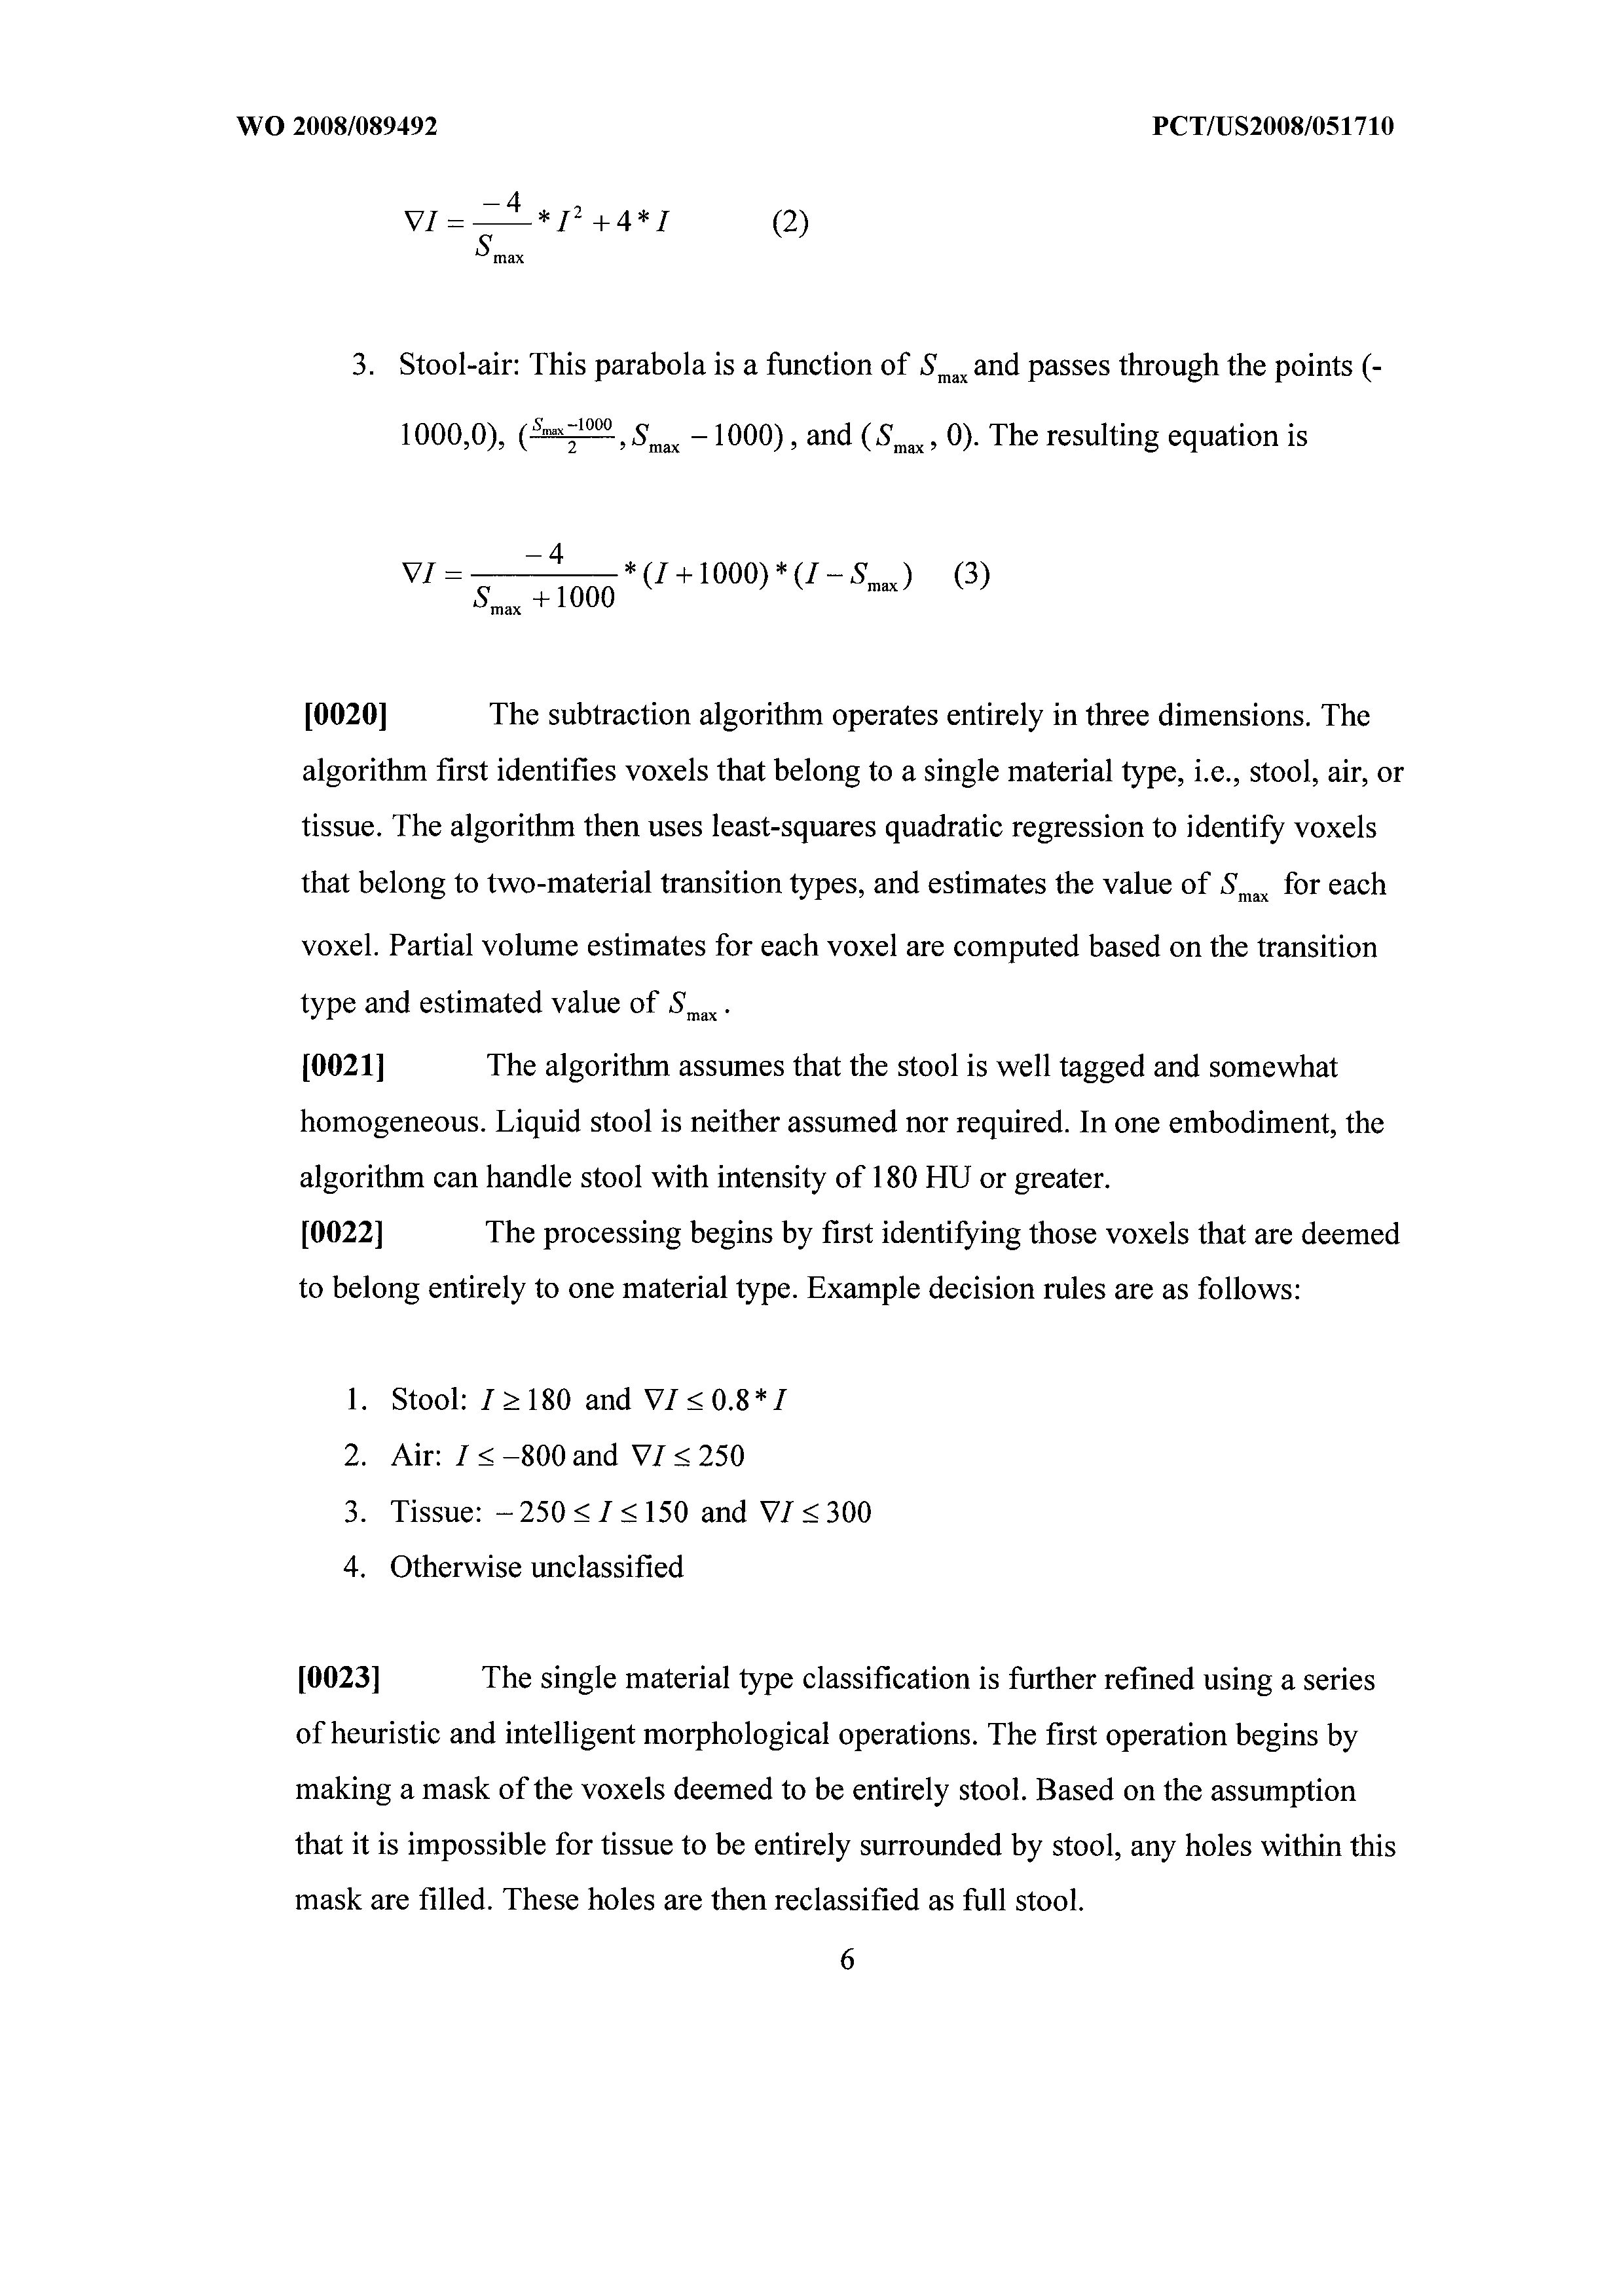 WO 2008/089492 A2 - Electronic Stool Subtraction Using